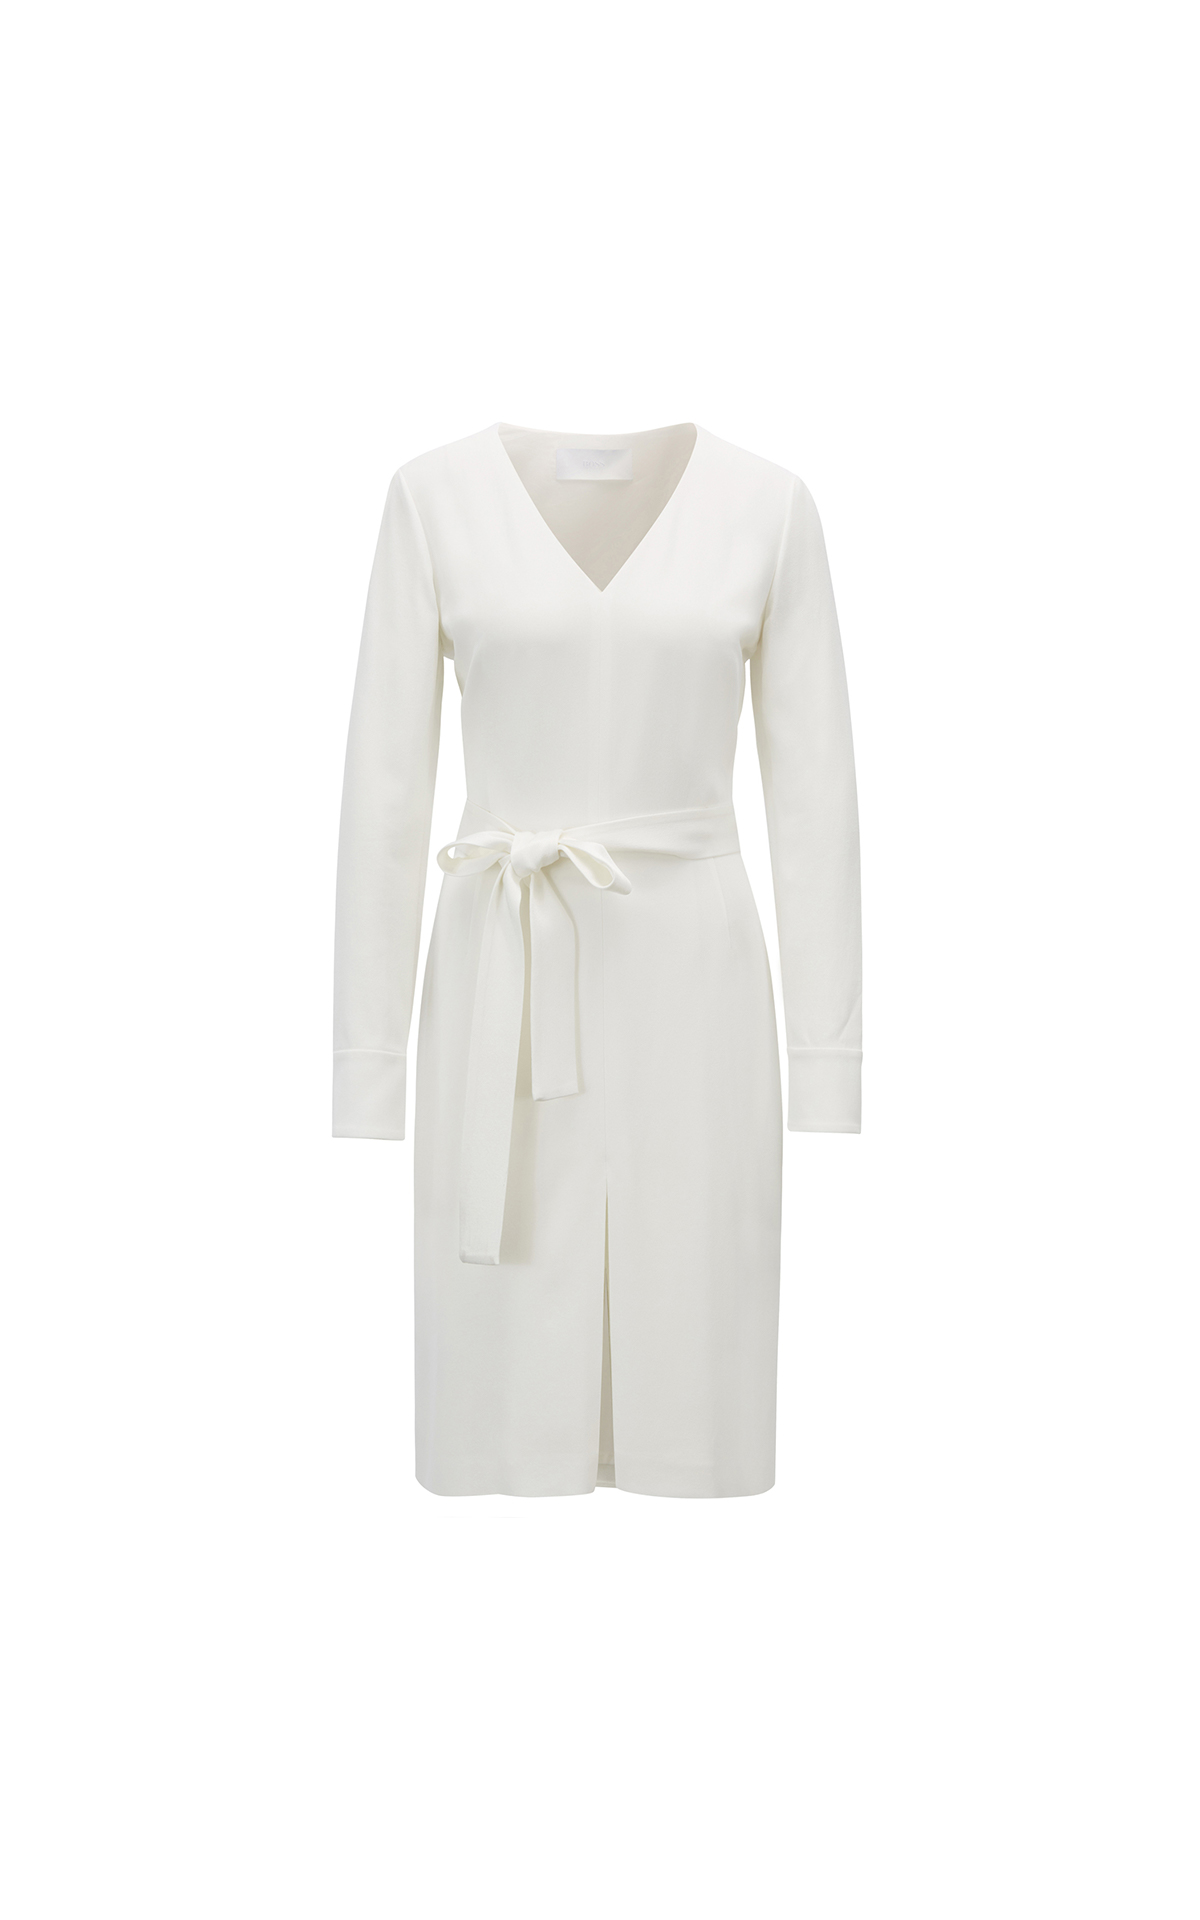 BOSS Women's v-neck dress at The Bicester Village Shopping Collection